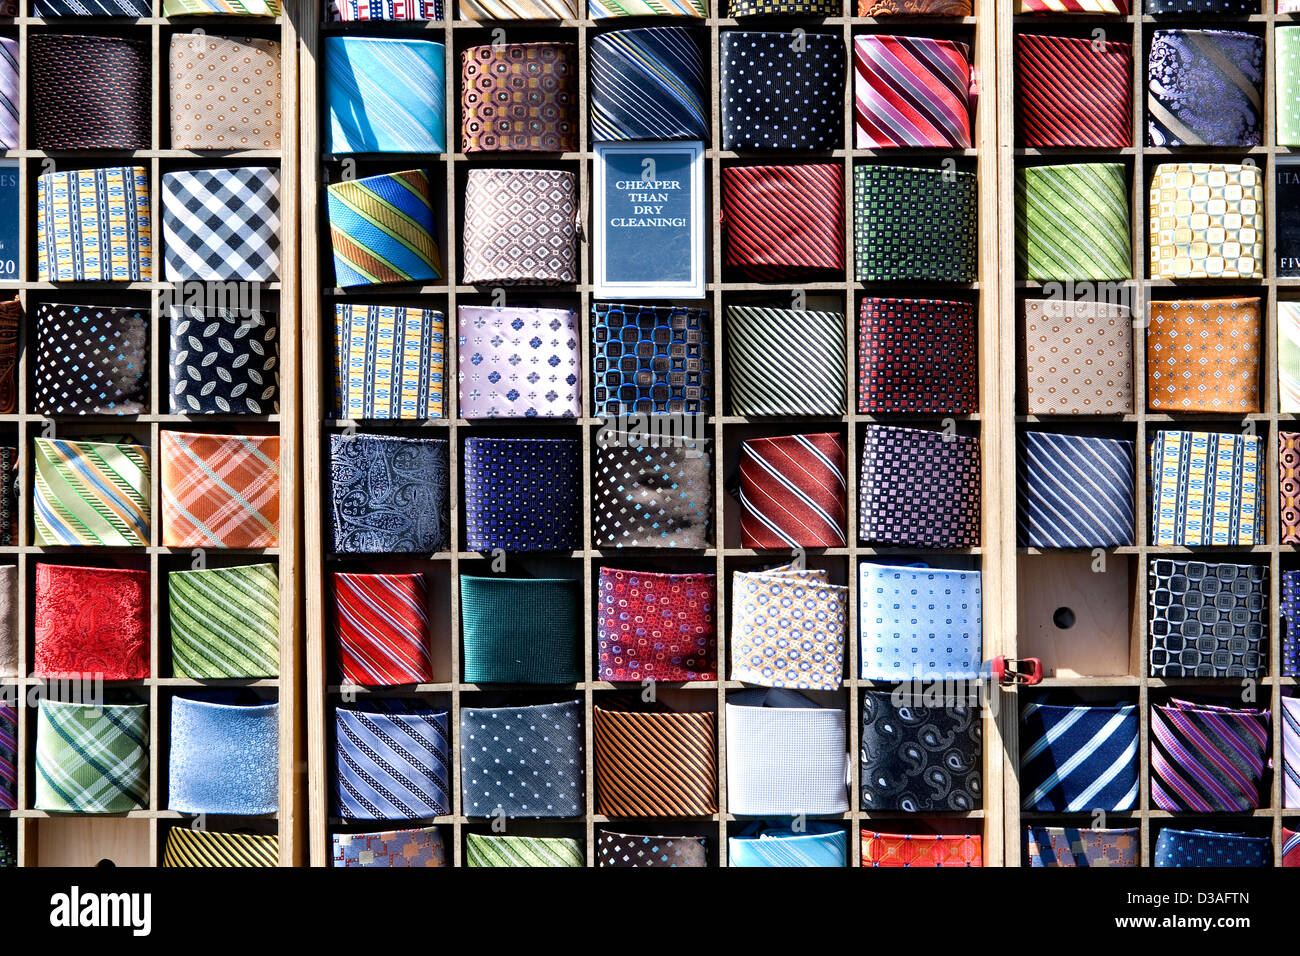 Ties for sale. - Stock Image